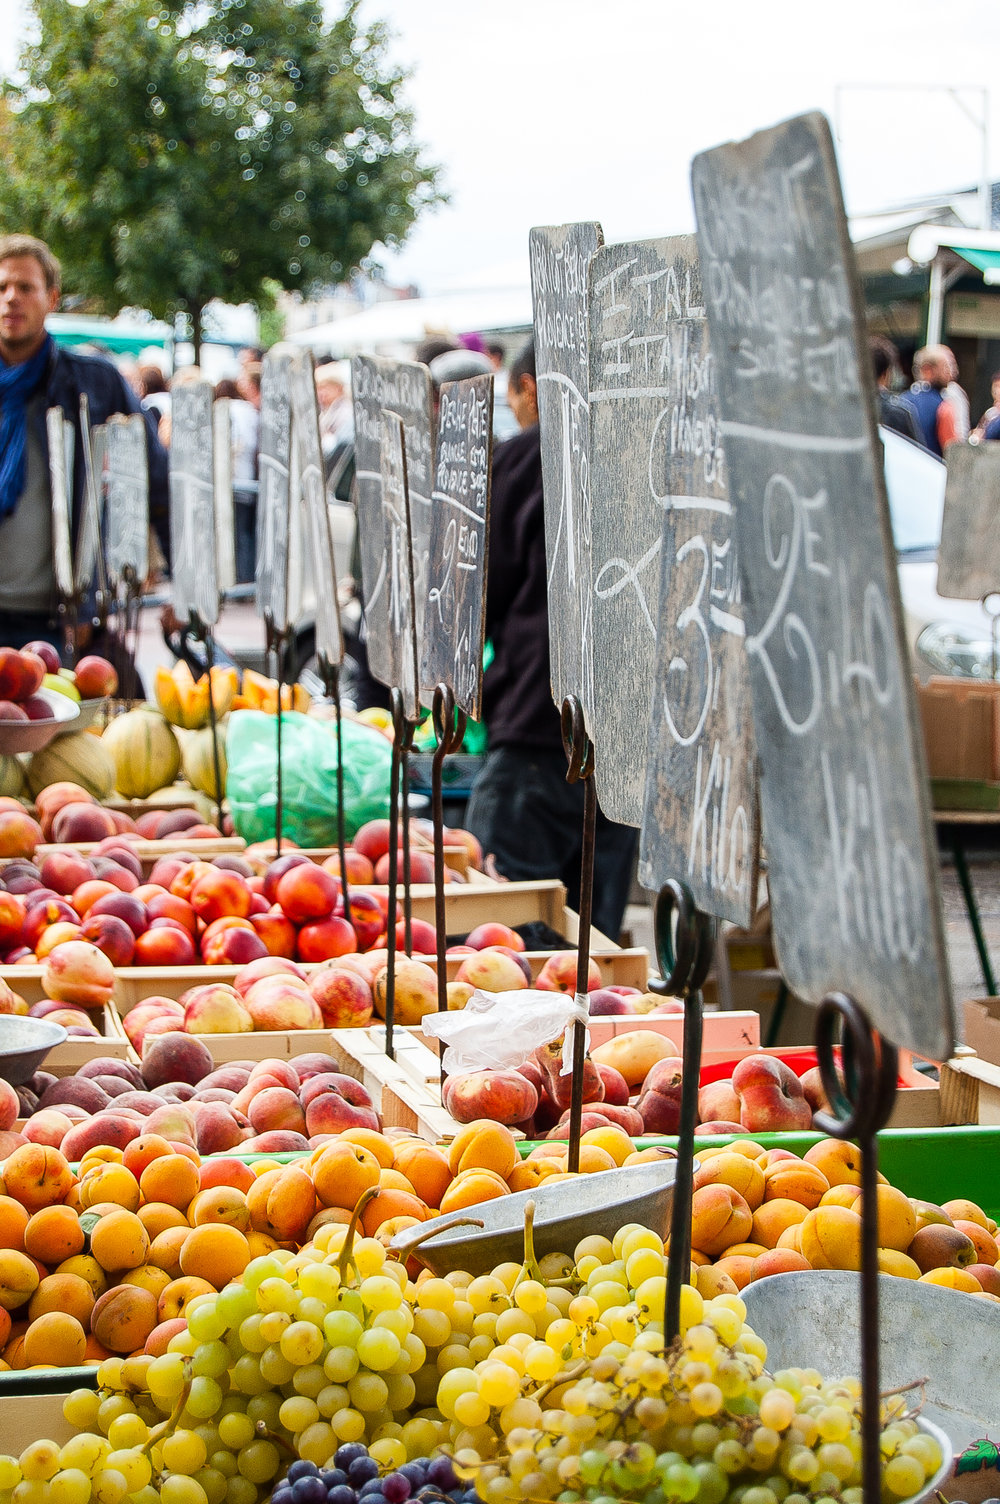 Lyon France Sunday Market Produce Fruit Signs